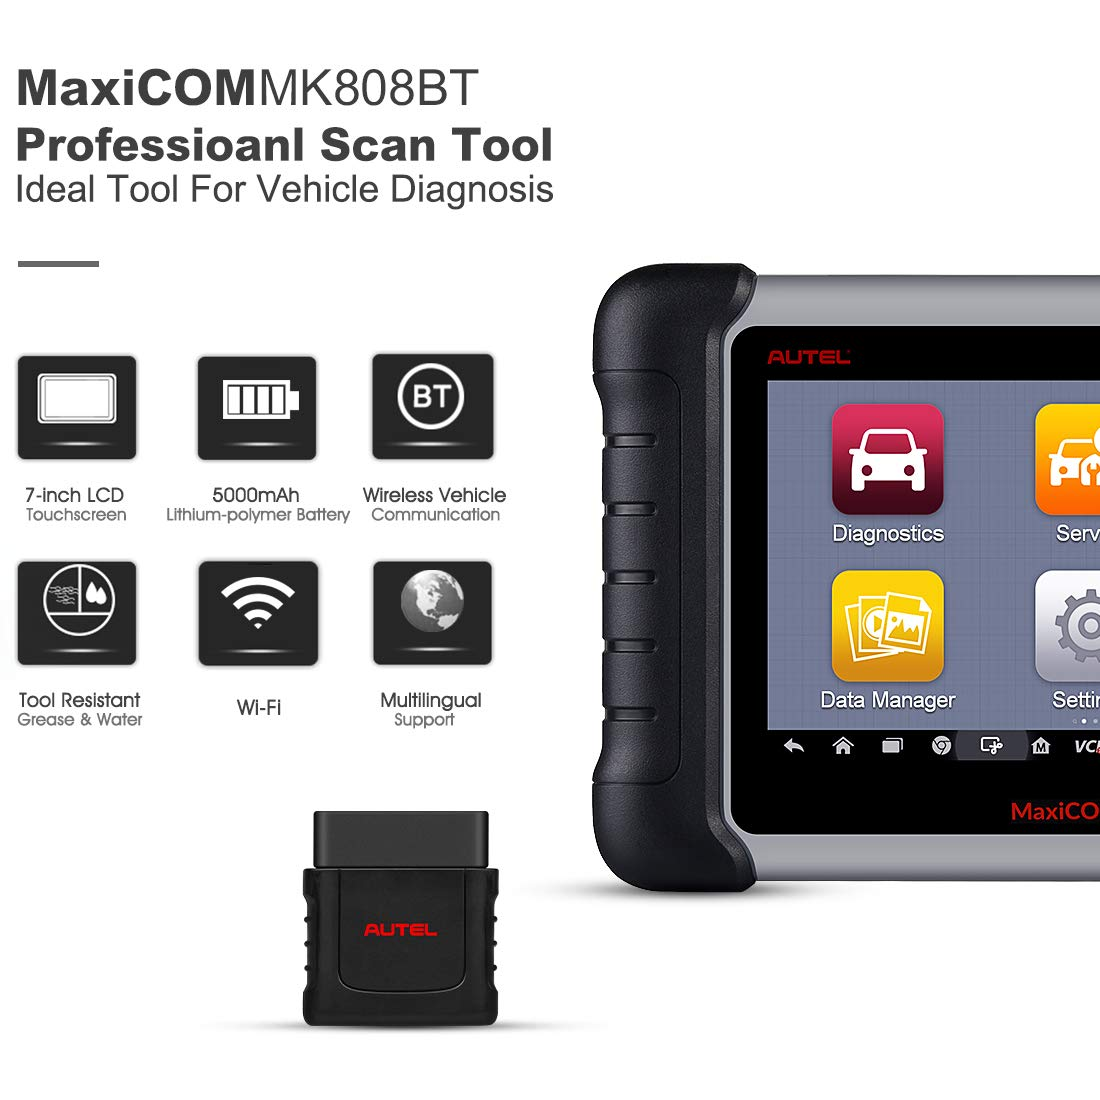 Autel OBD2 Scanner MaxiCOM MK808BT Diagnostic Tool, Upgraded Version of MK808, with MaxiVCI Supports Full System Scan & IMMO/EPB/SAS/BMS/TPMS/DPF by Autel (Image #6)